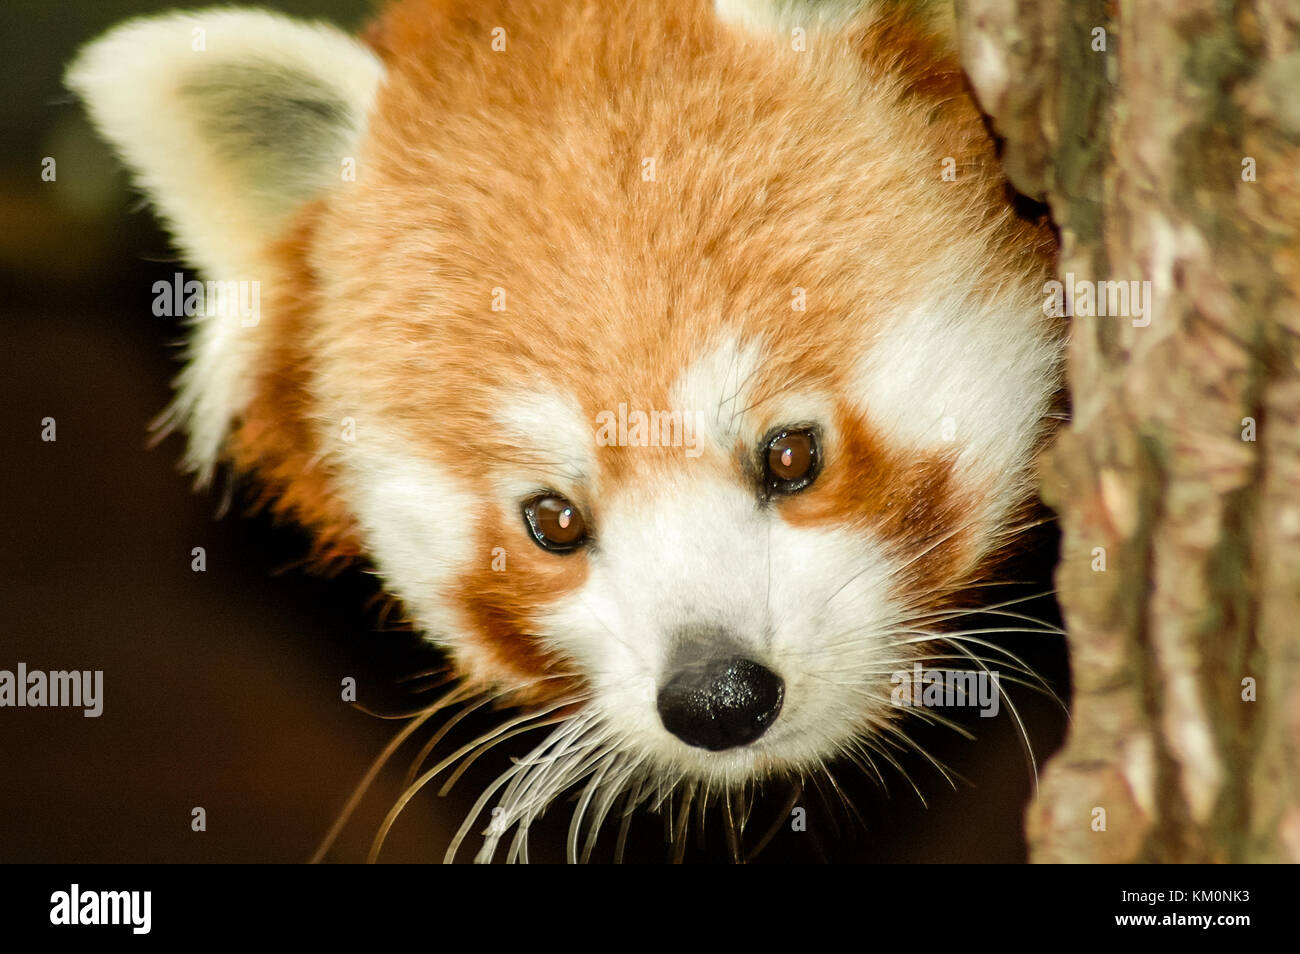 A Red Panda (Ailurus fulgens) or Lesser Panda peers from behind a tree. Stock Photo